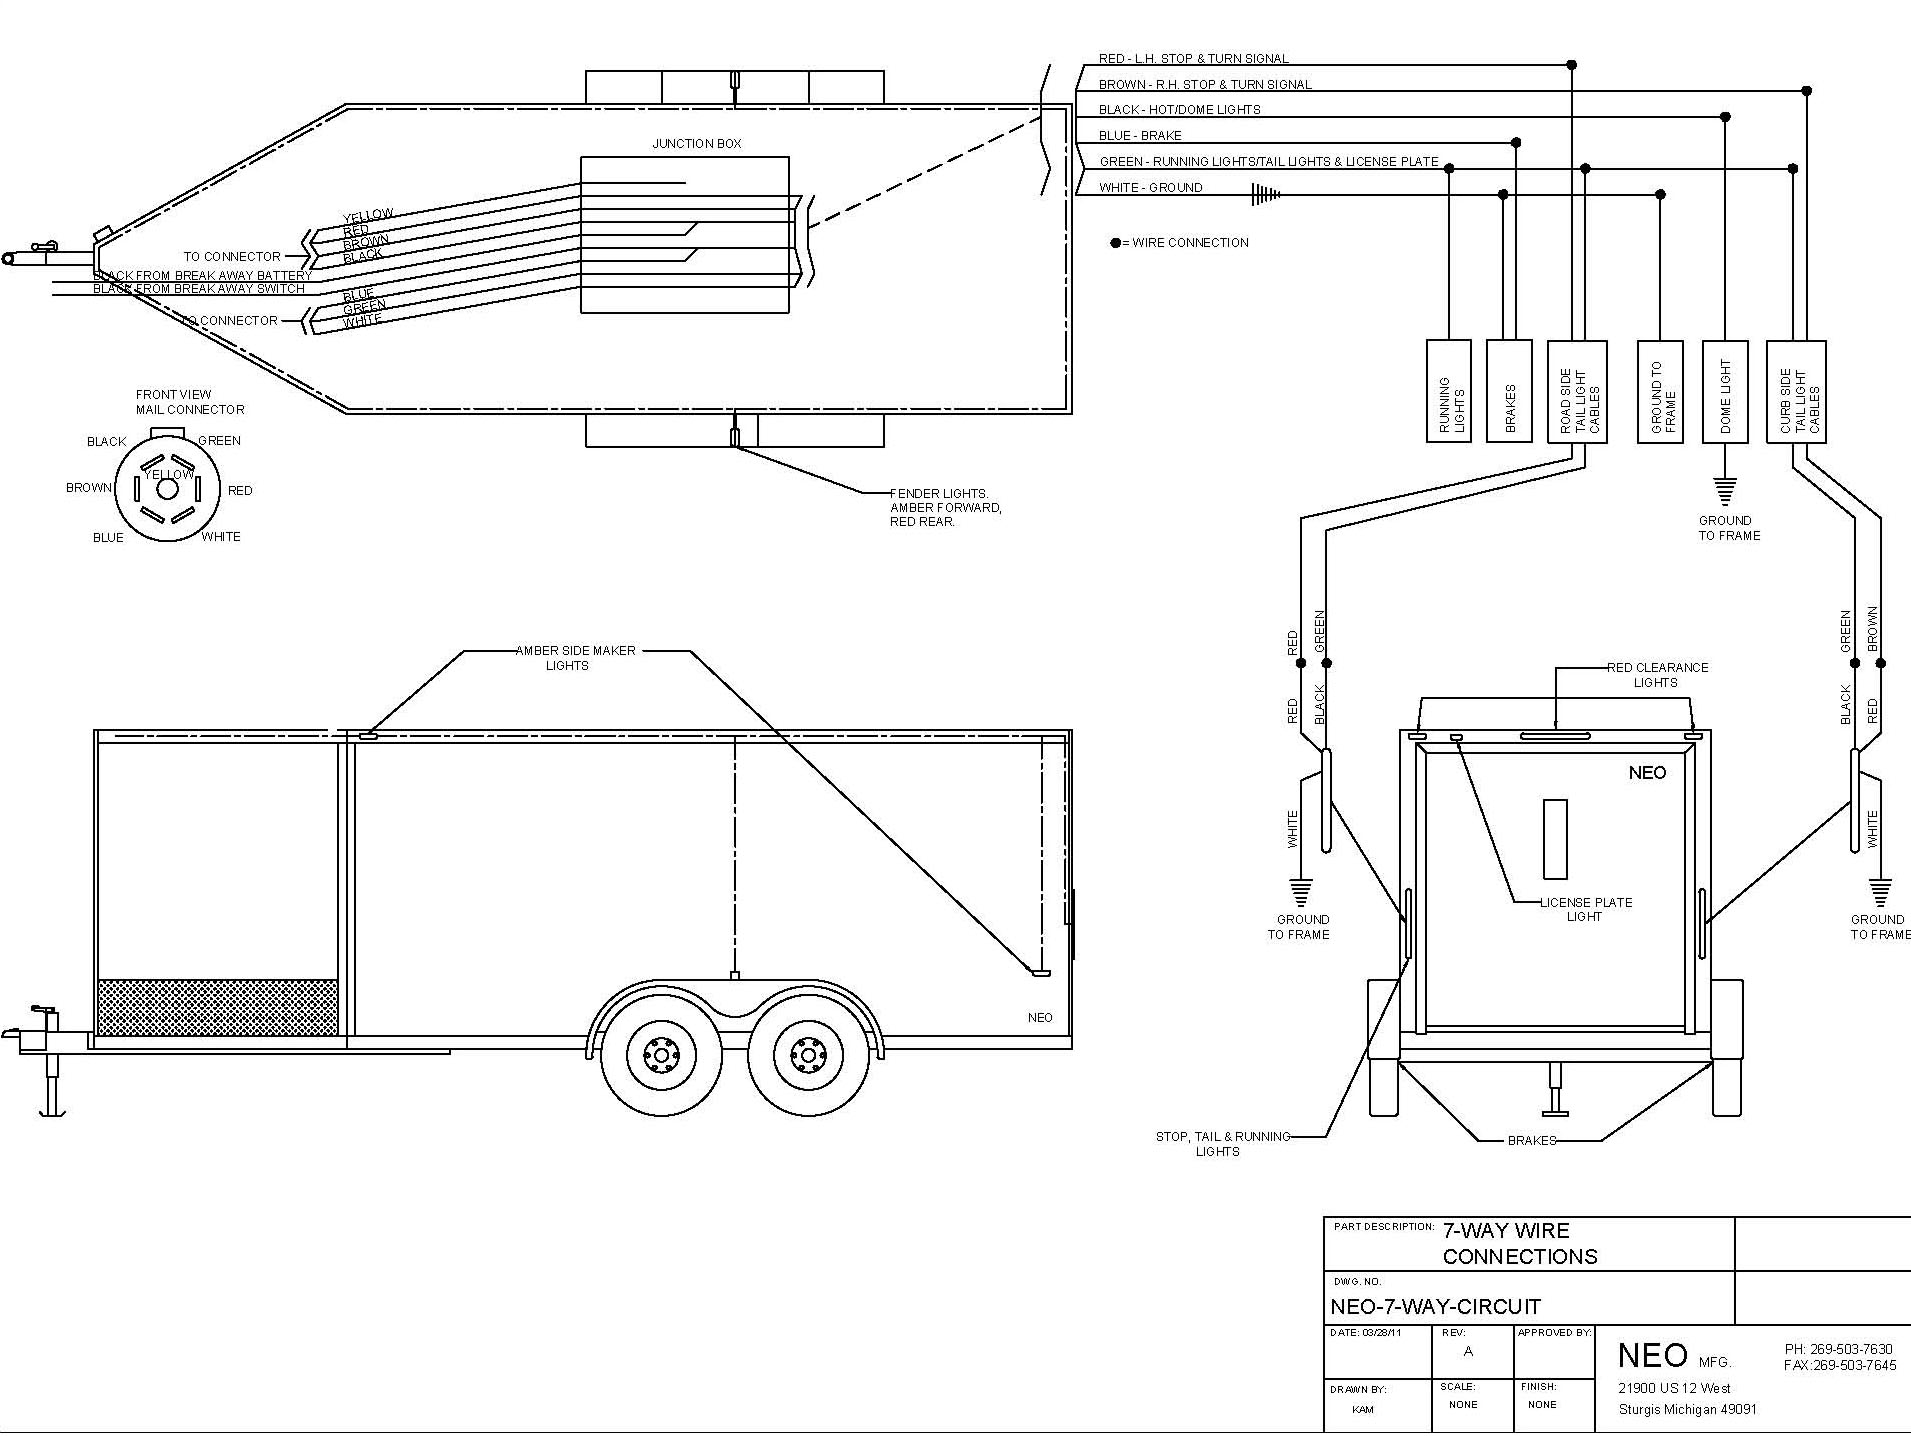 6 way trailer plug wiring diagram ke heavy duty trailer ke wiring diagram heavy free engine #2